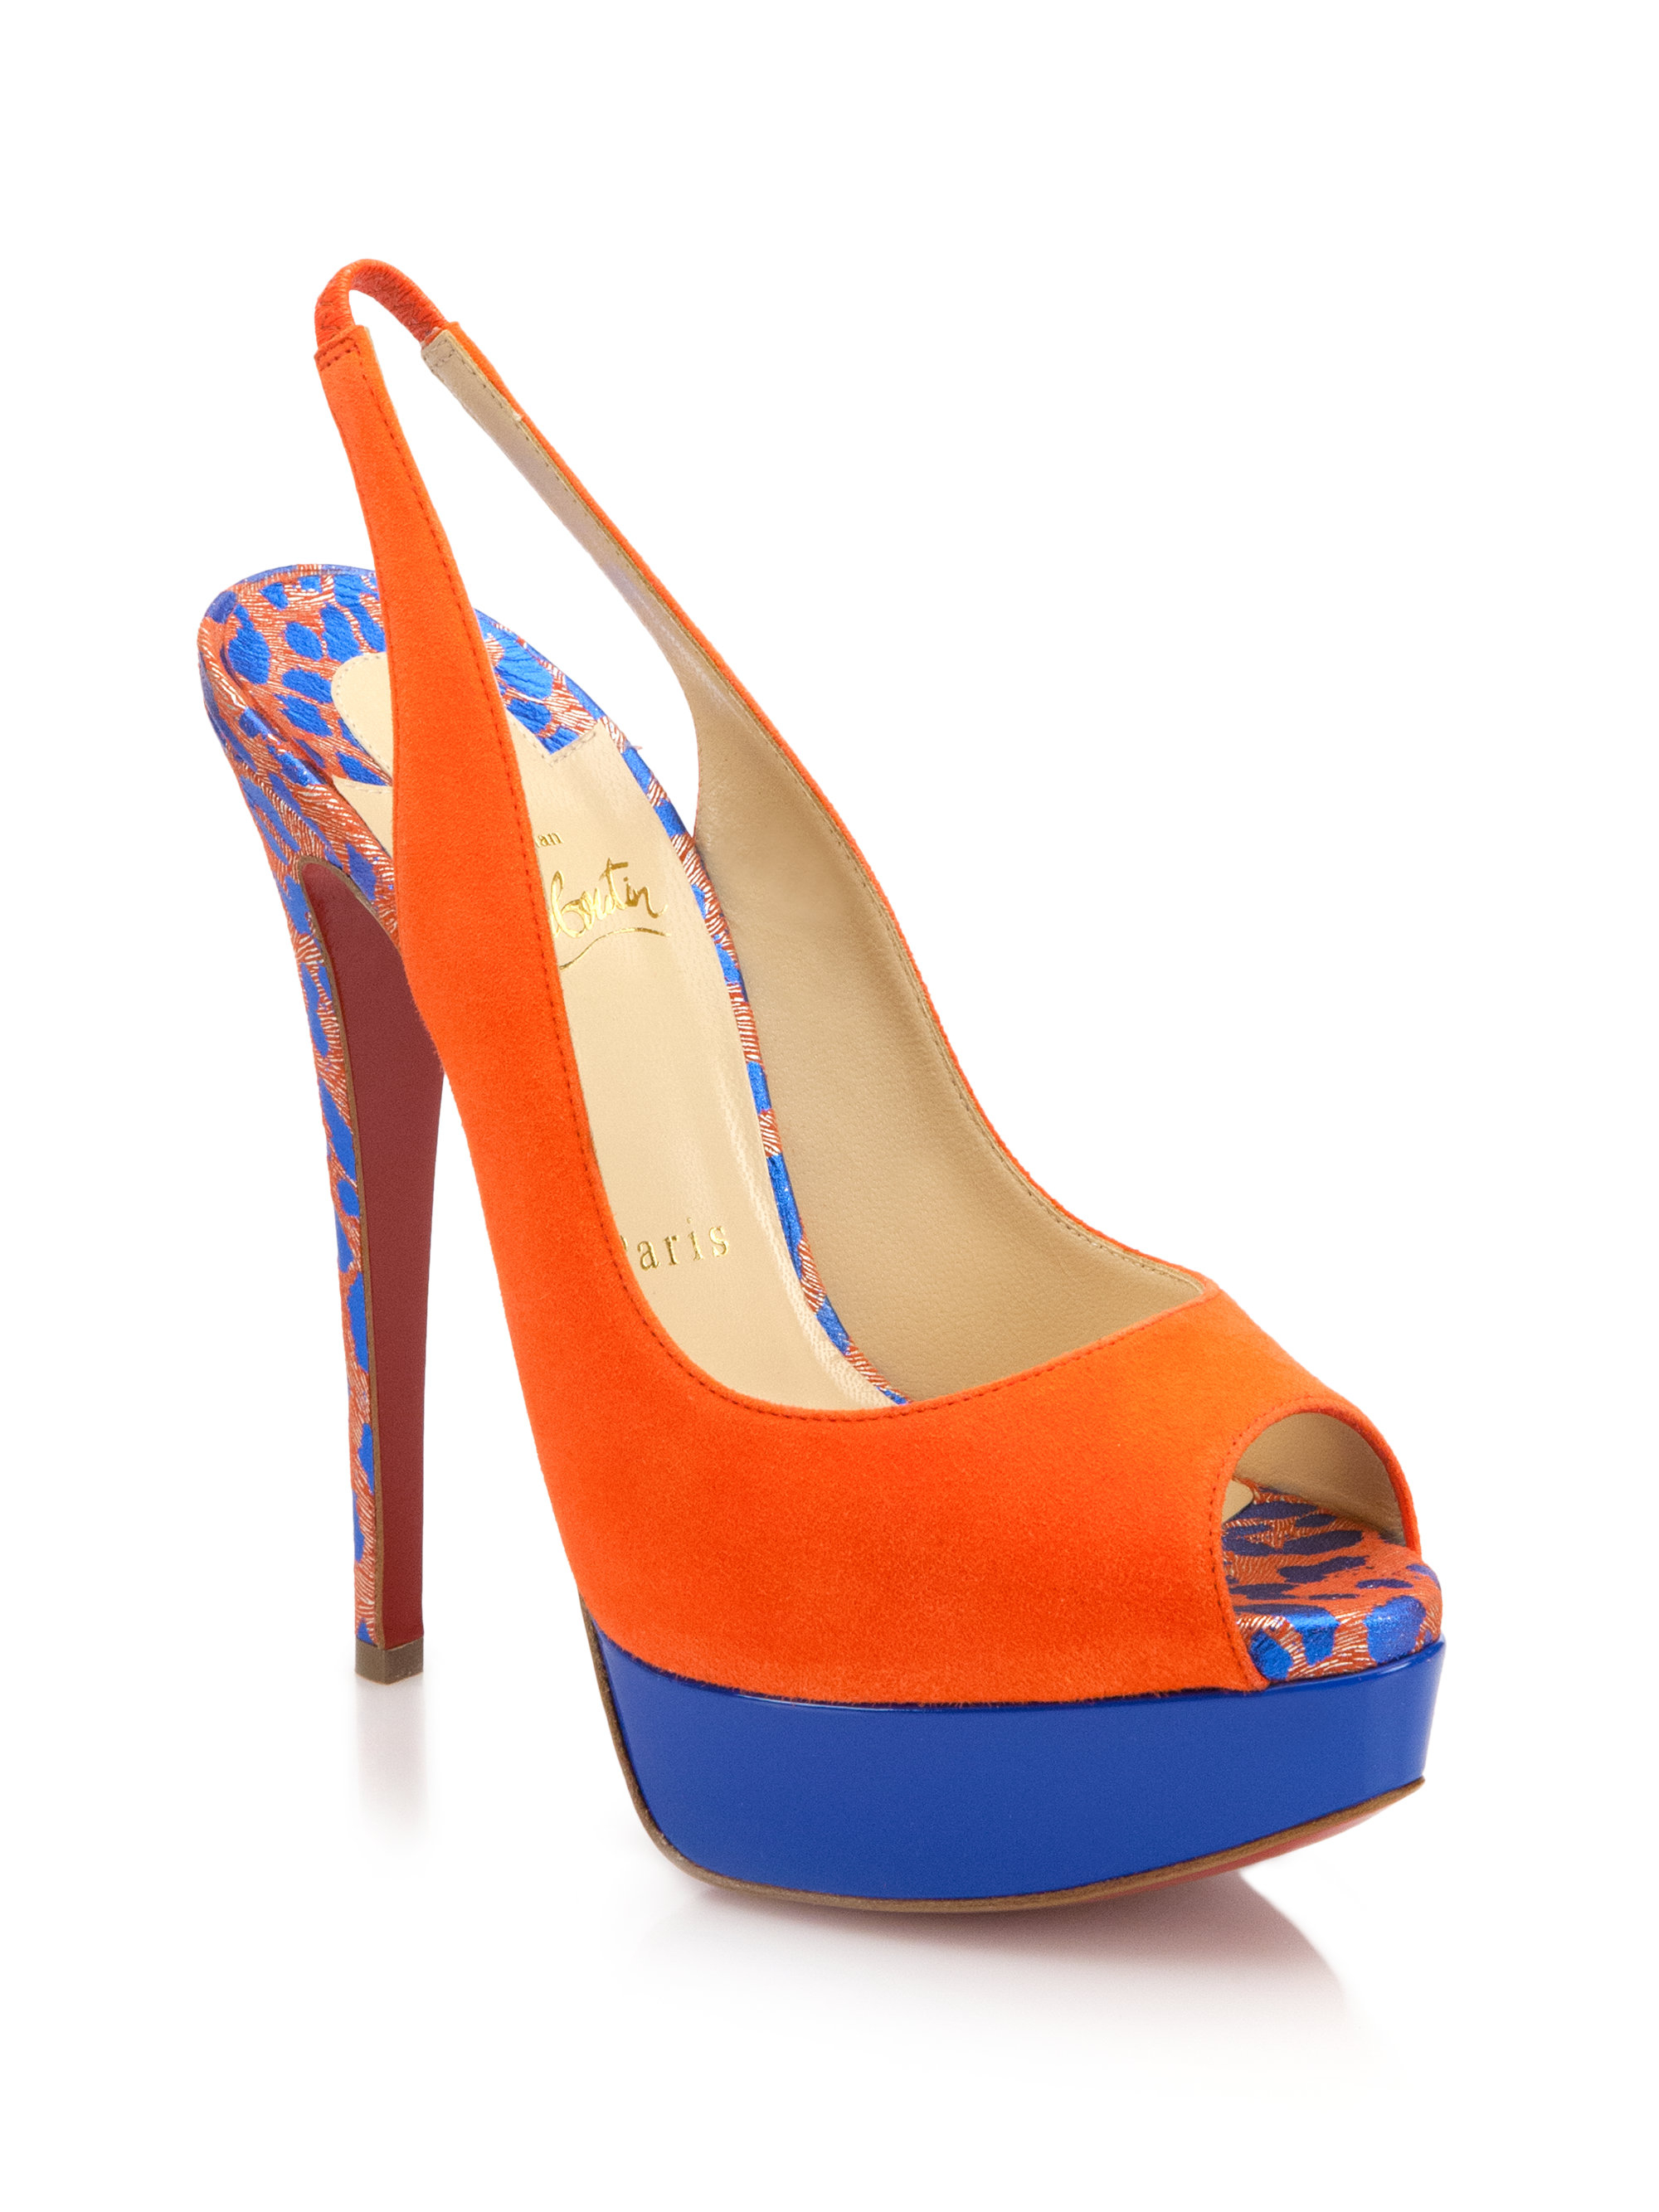 cheap replica christian louboutins - Christian louboutin Colorblock Suede Peep-Toe Slingback Pumps in ...